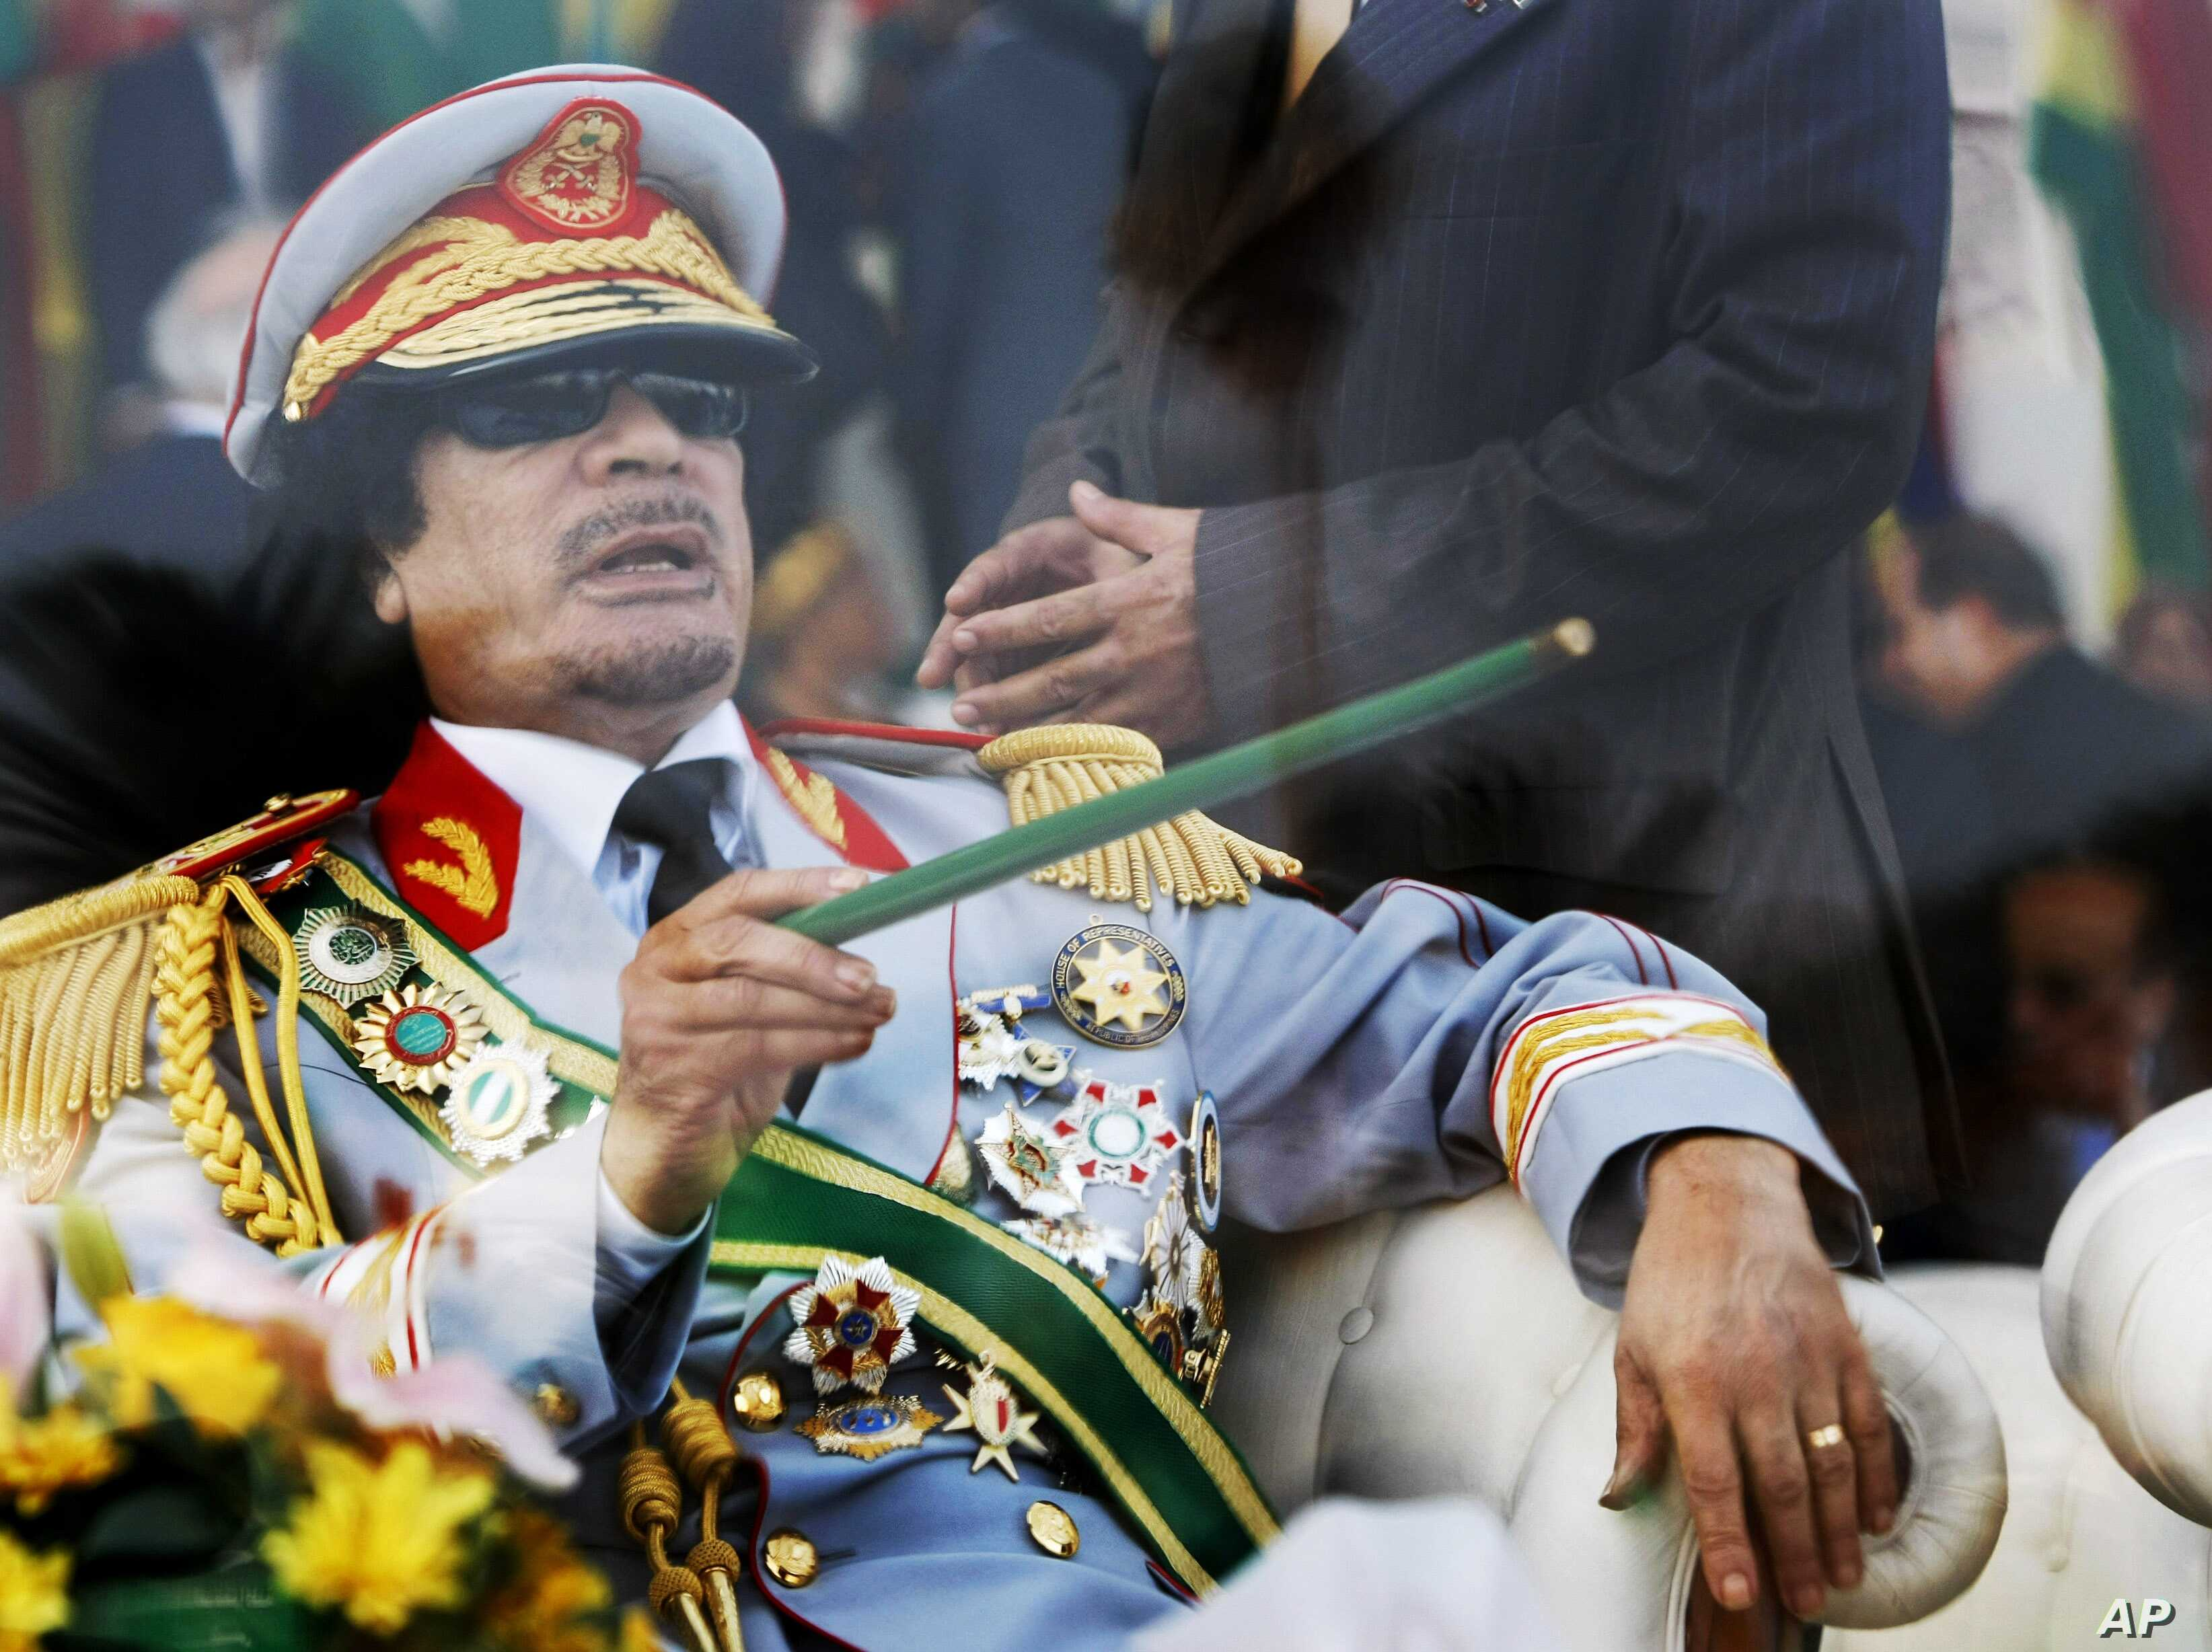 FILE - In this Tuesday, Sept. 1, 2009 file photo, Libyan leader Moammar Gadhafi gestures with a green cane as he takes his seat behind bulletproof glass for a military parade in Green Square, Tripoli, Libya.